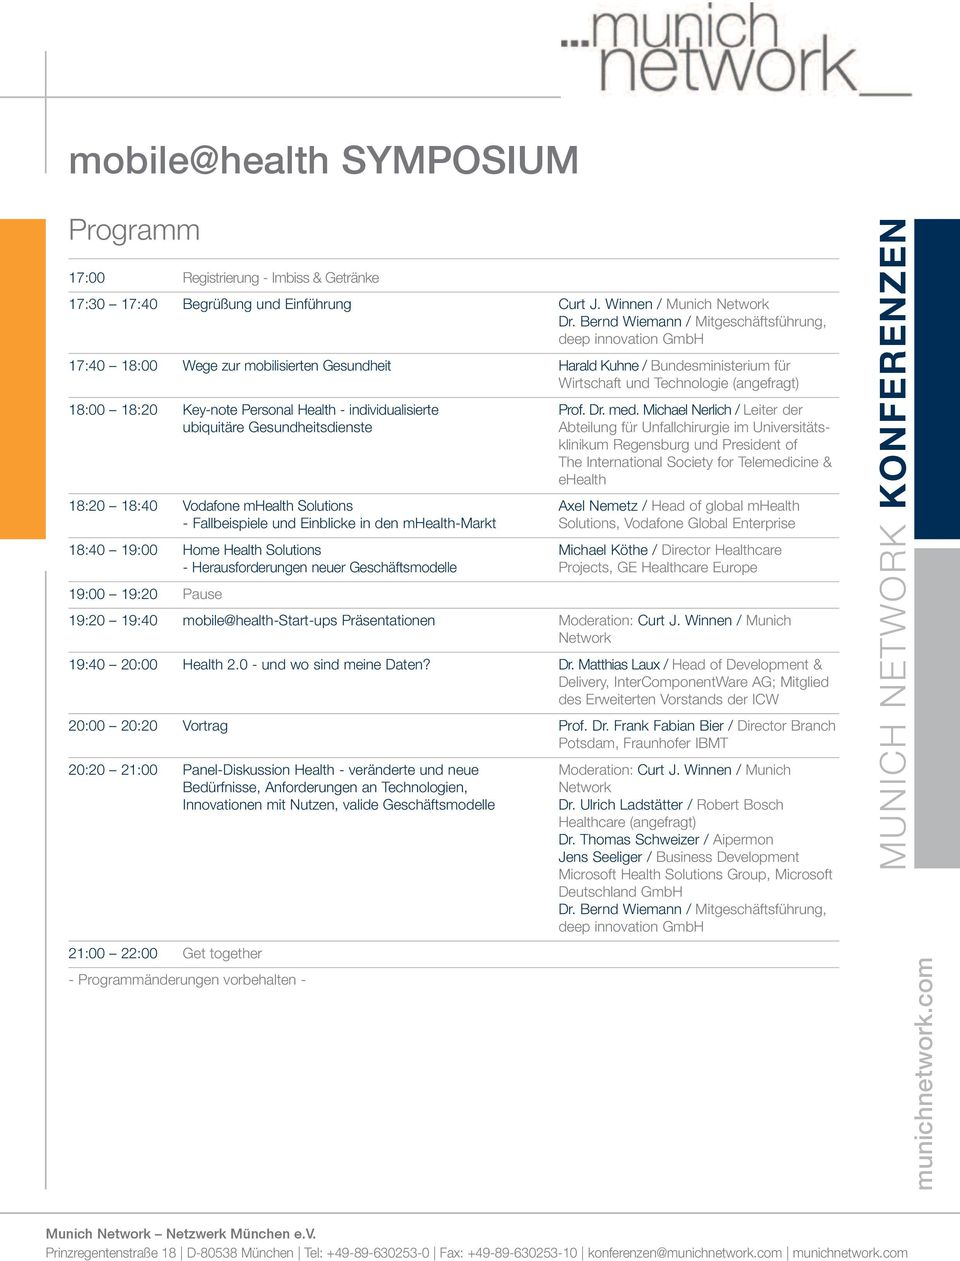 Key-note Personal Health - individualisierte Prof. Dr. med.